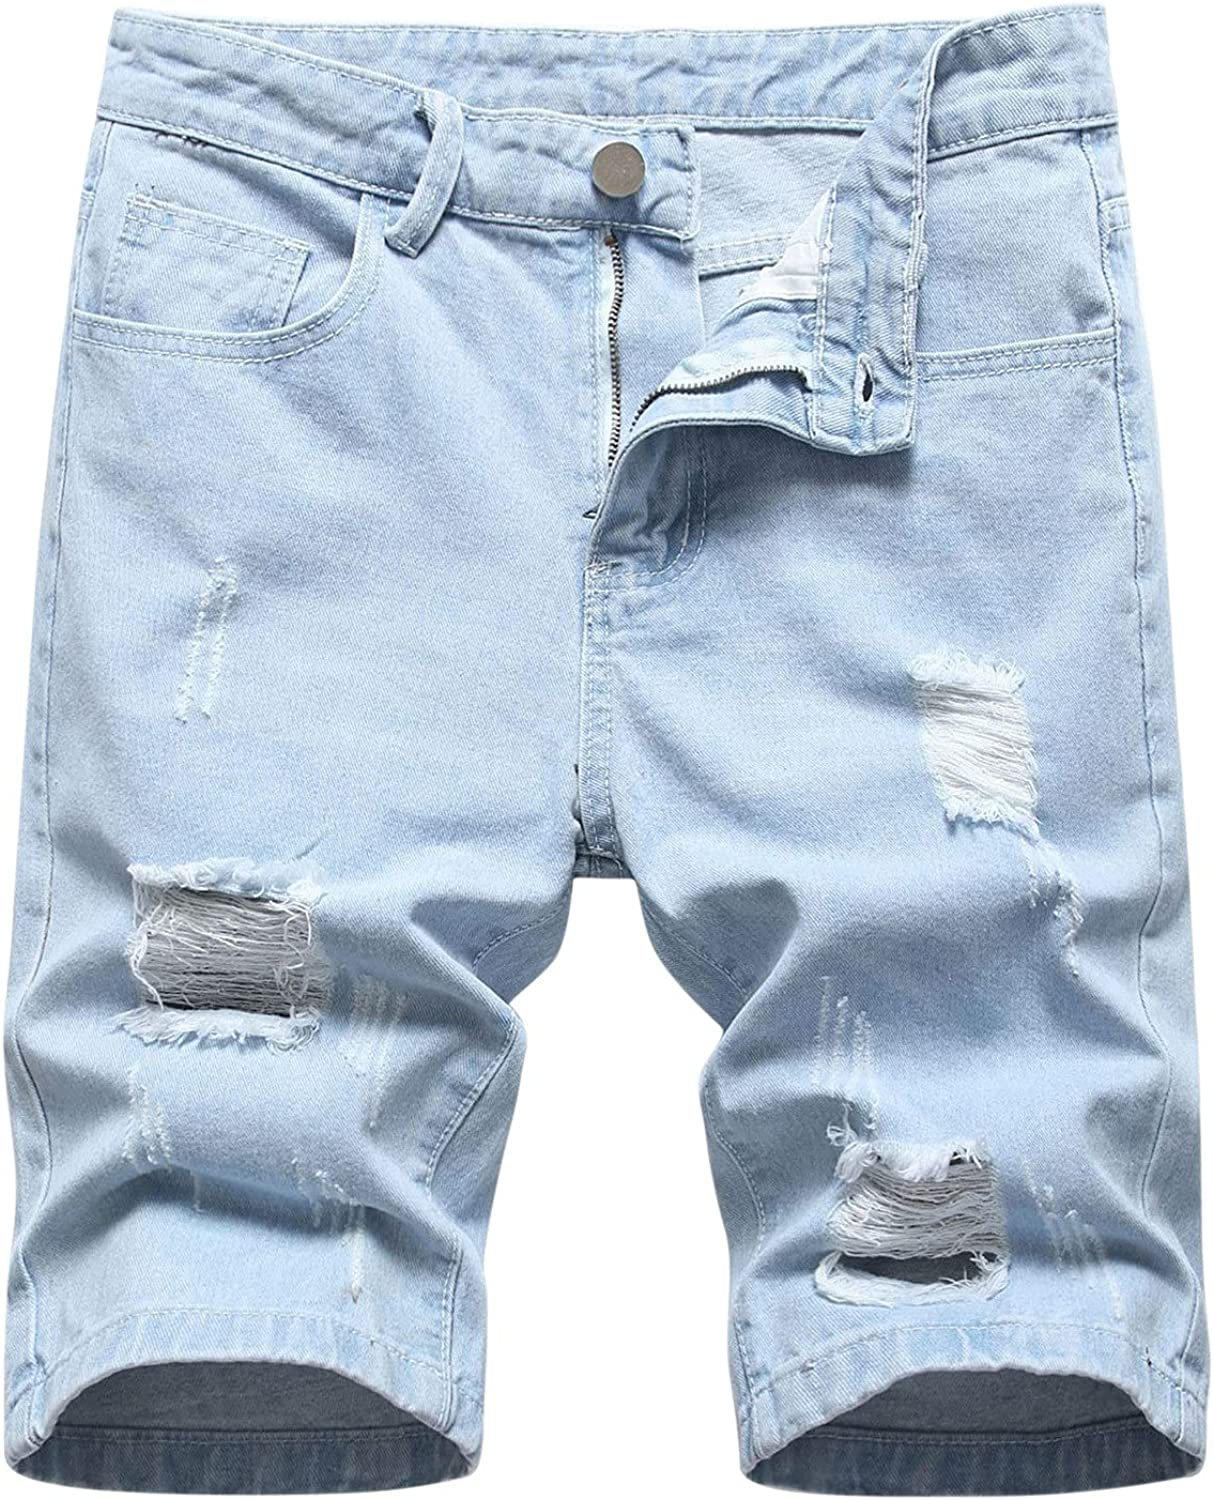 Men's Summer Casual Denim Shorts Ripped Distressed Relaxed Fit Printed Thin Casual Washed Denim Jeans Cargo Shorts